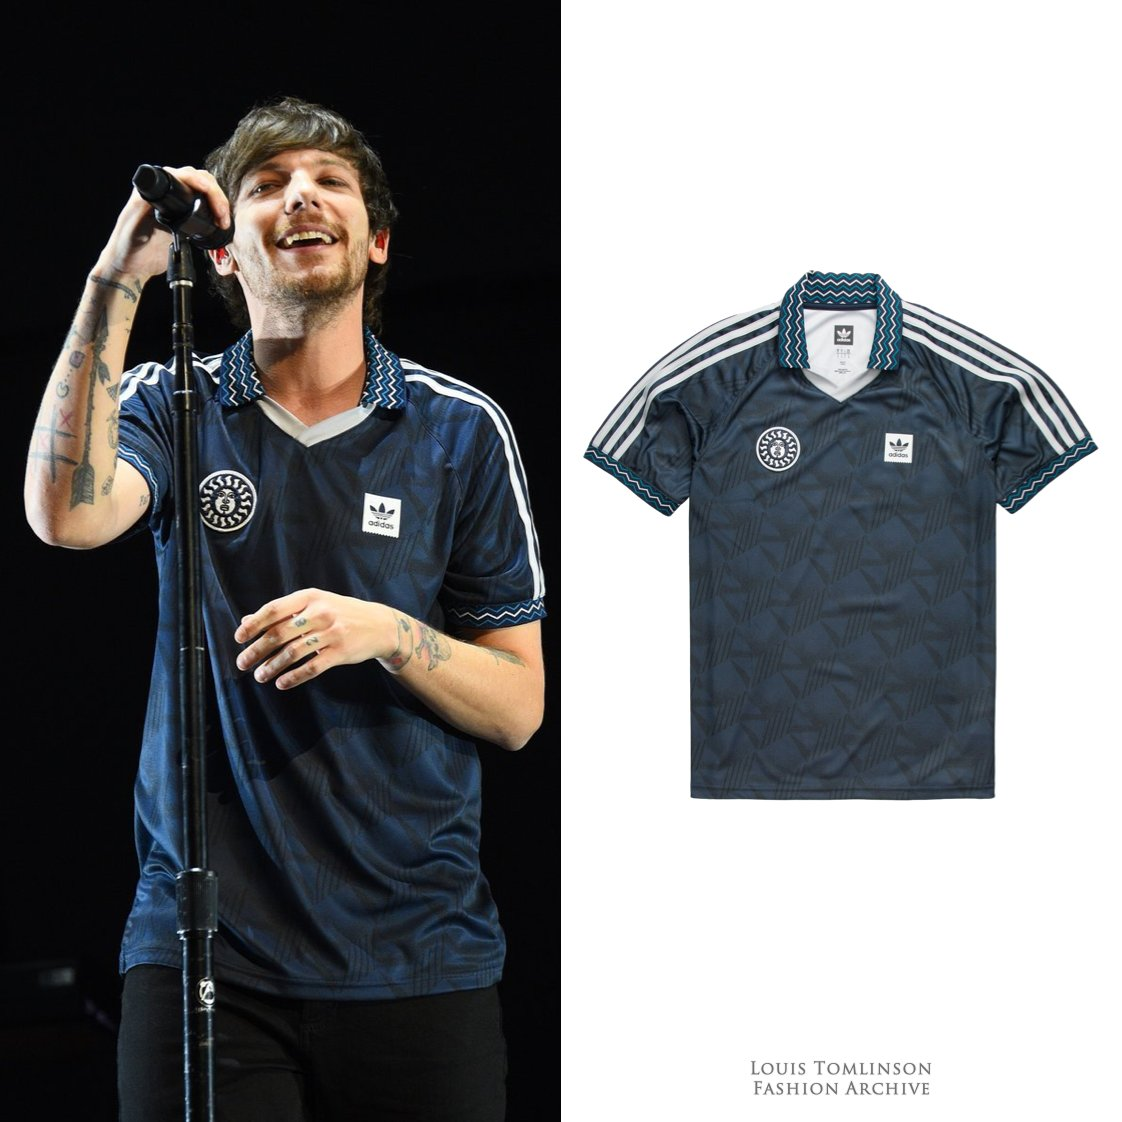 Louis Tomlinson Fashion Archive on Twitter: